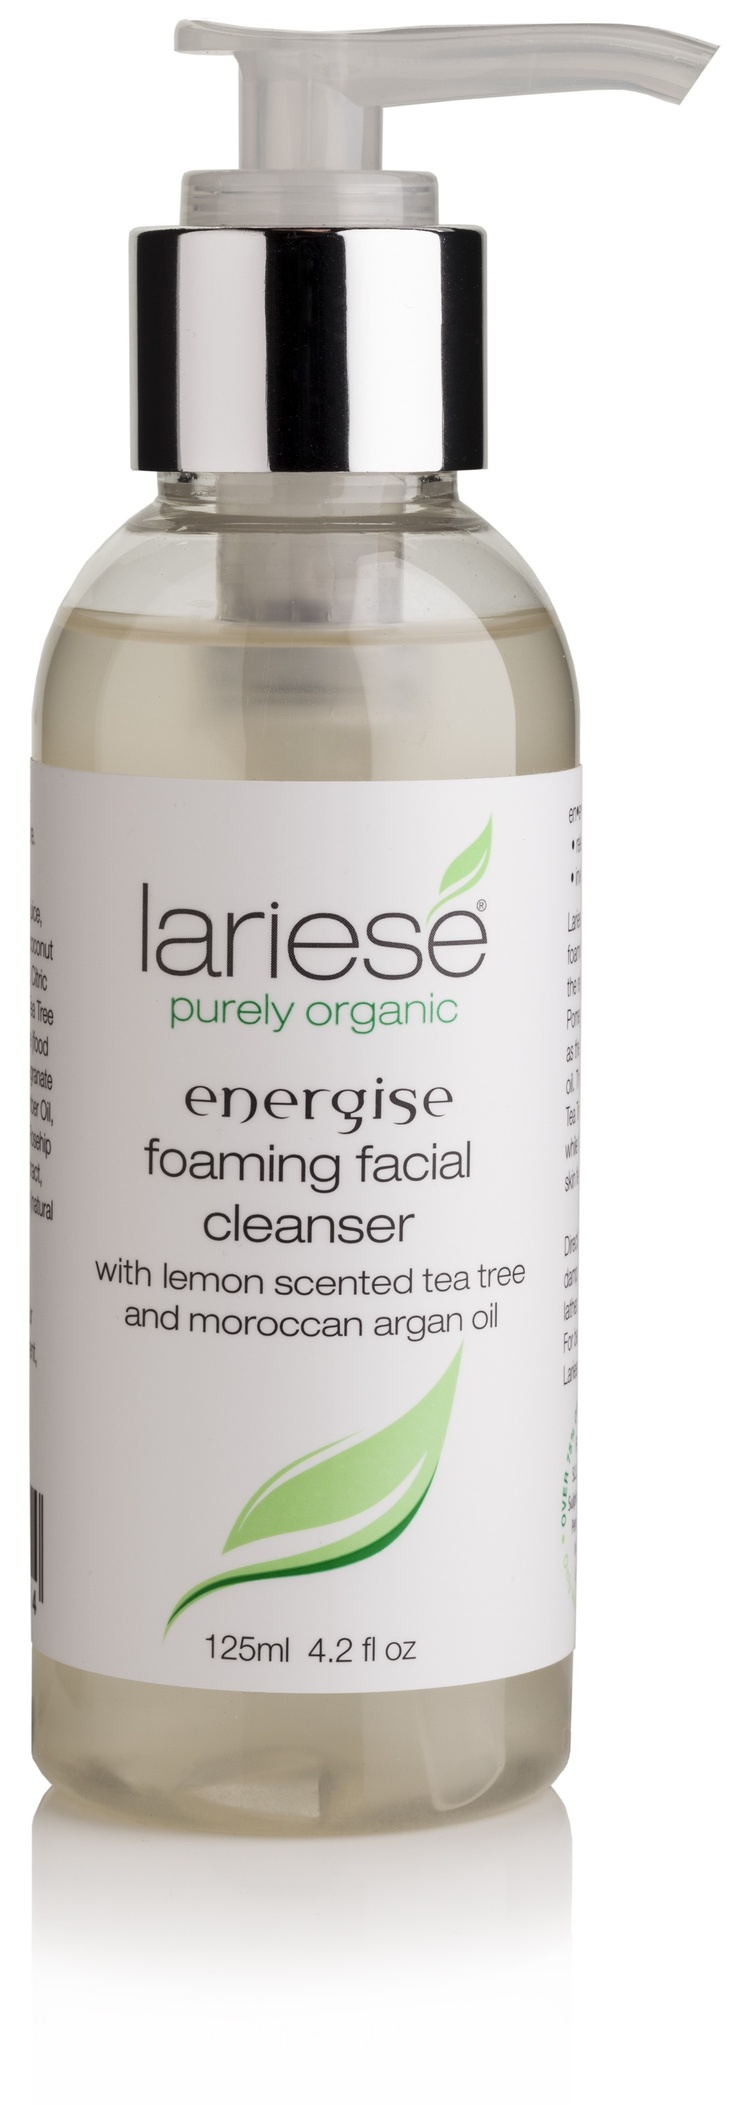 Rejuvenating facial cleanser any situation